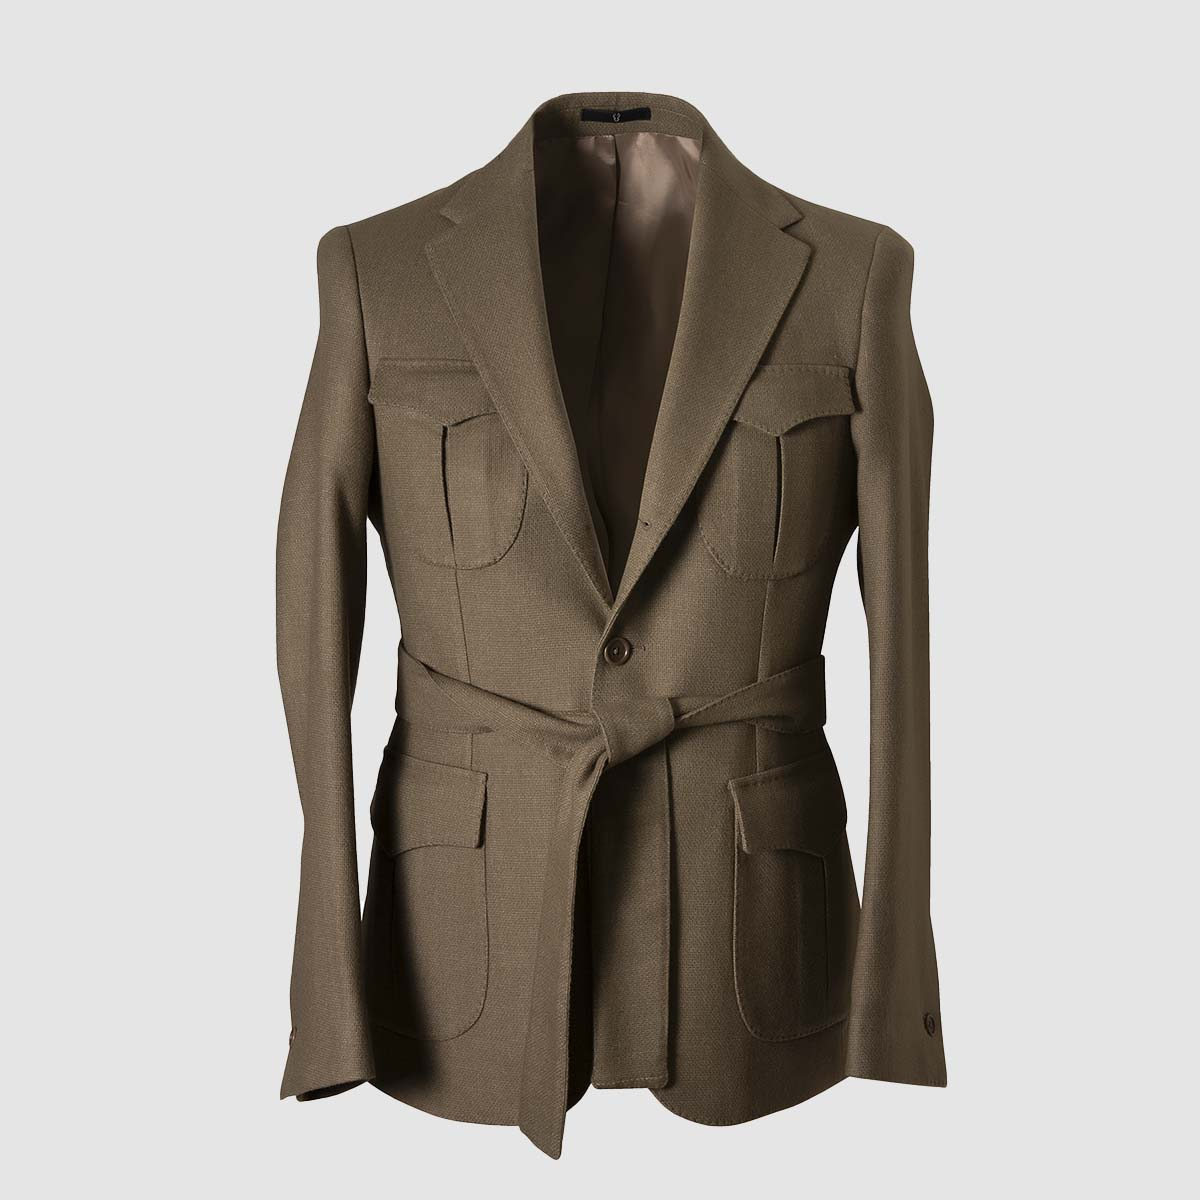 Military green woolm & polyester Jacket with belt